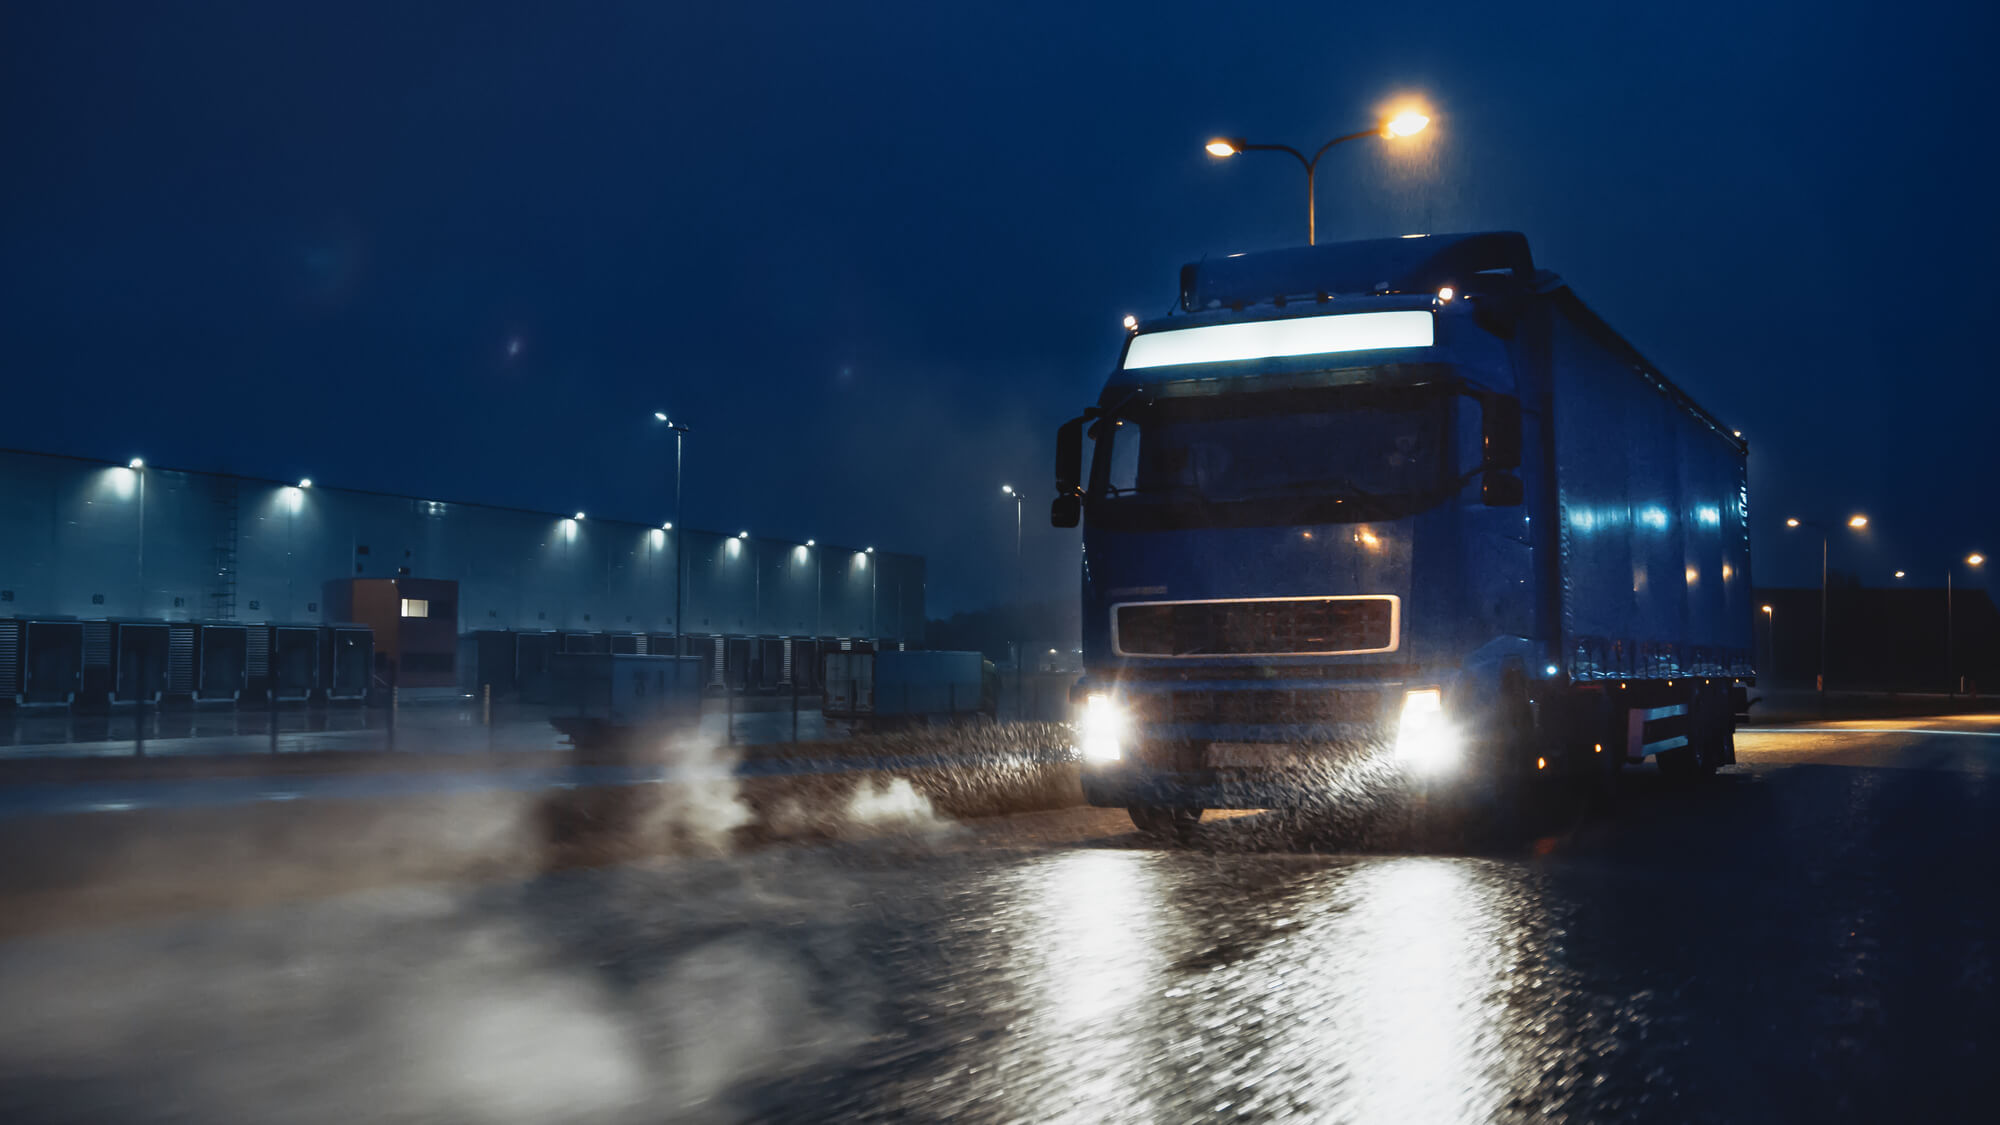 HGV Night Driving Rules | What You Need To Know